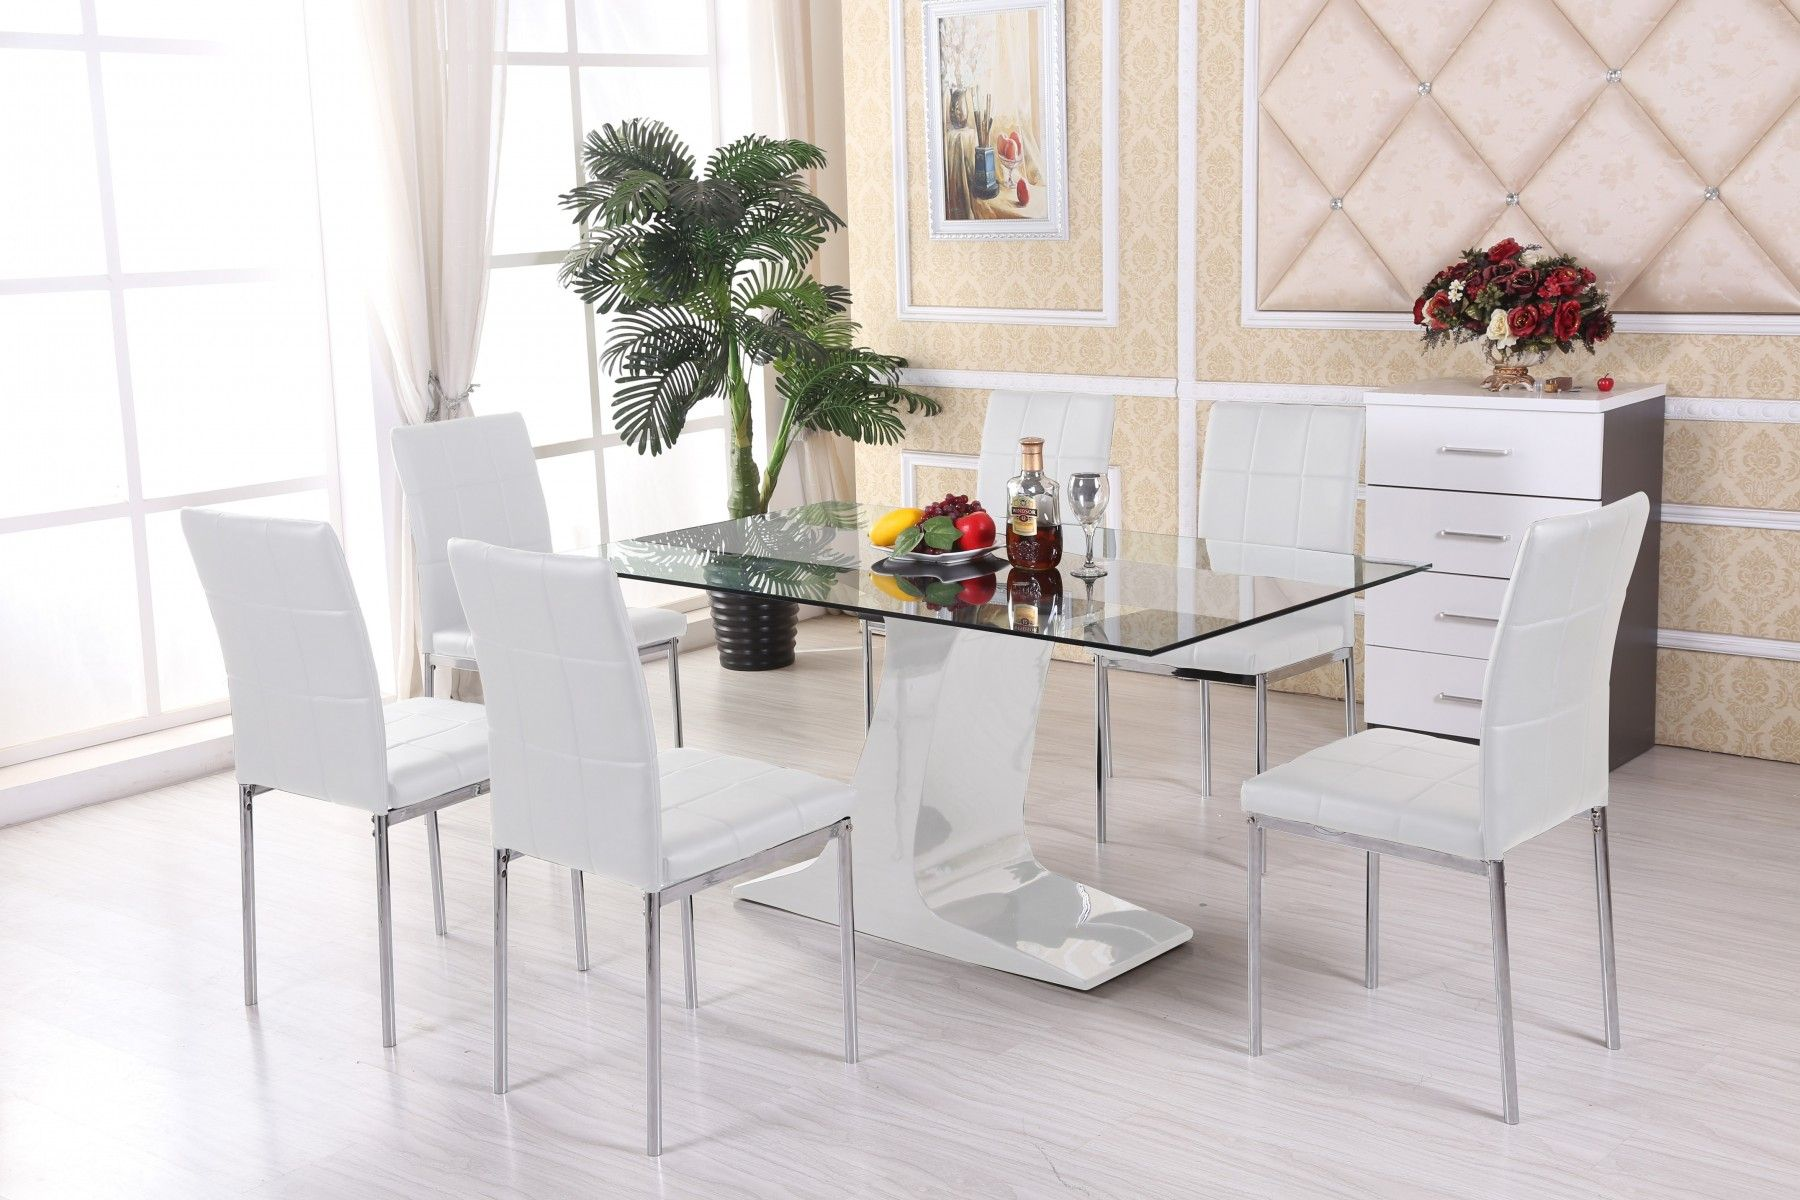 Modern Glass Dining Table Modern Glass Kitchen Table  Modern Enchanting White Kitchen Chairs Inspiration Design